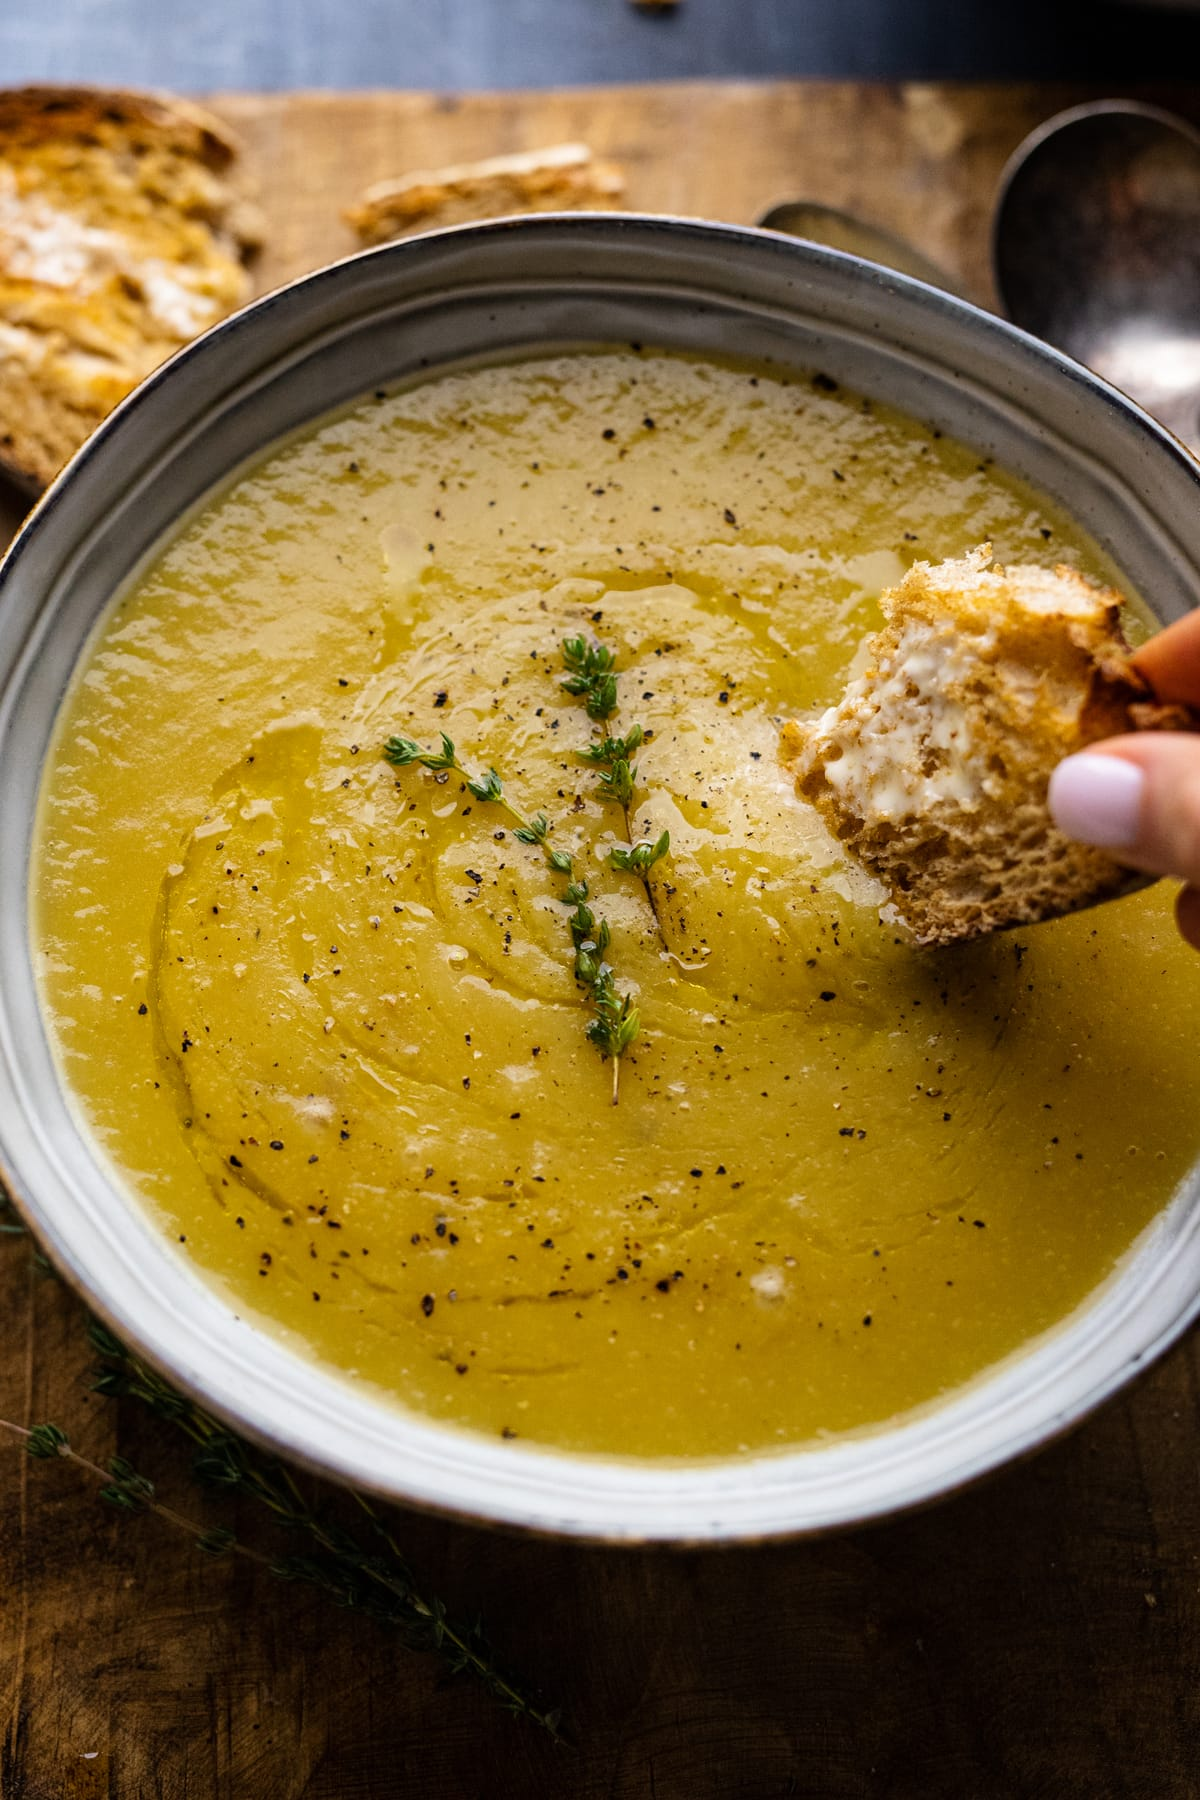 A hand dipping bread into a bowl of leek and potato soup.